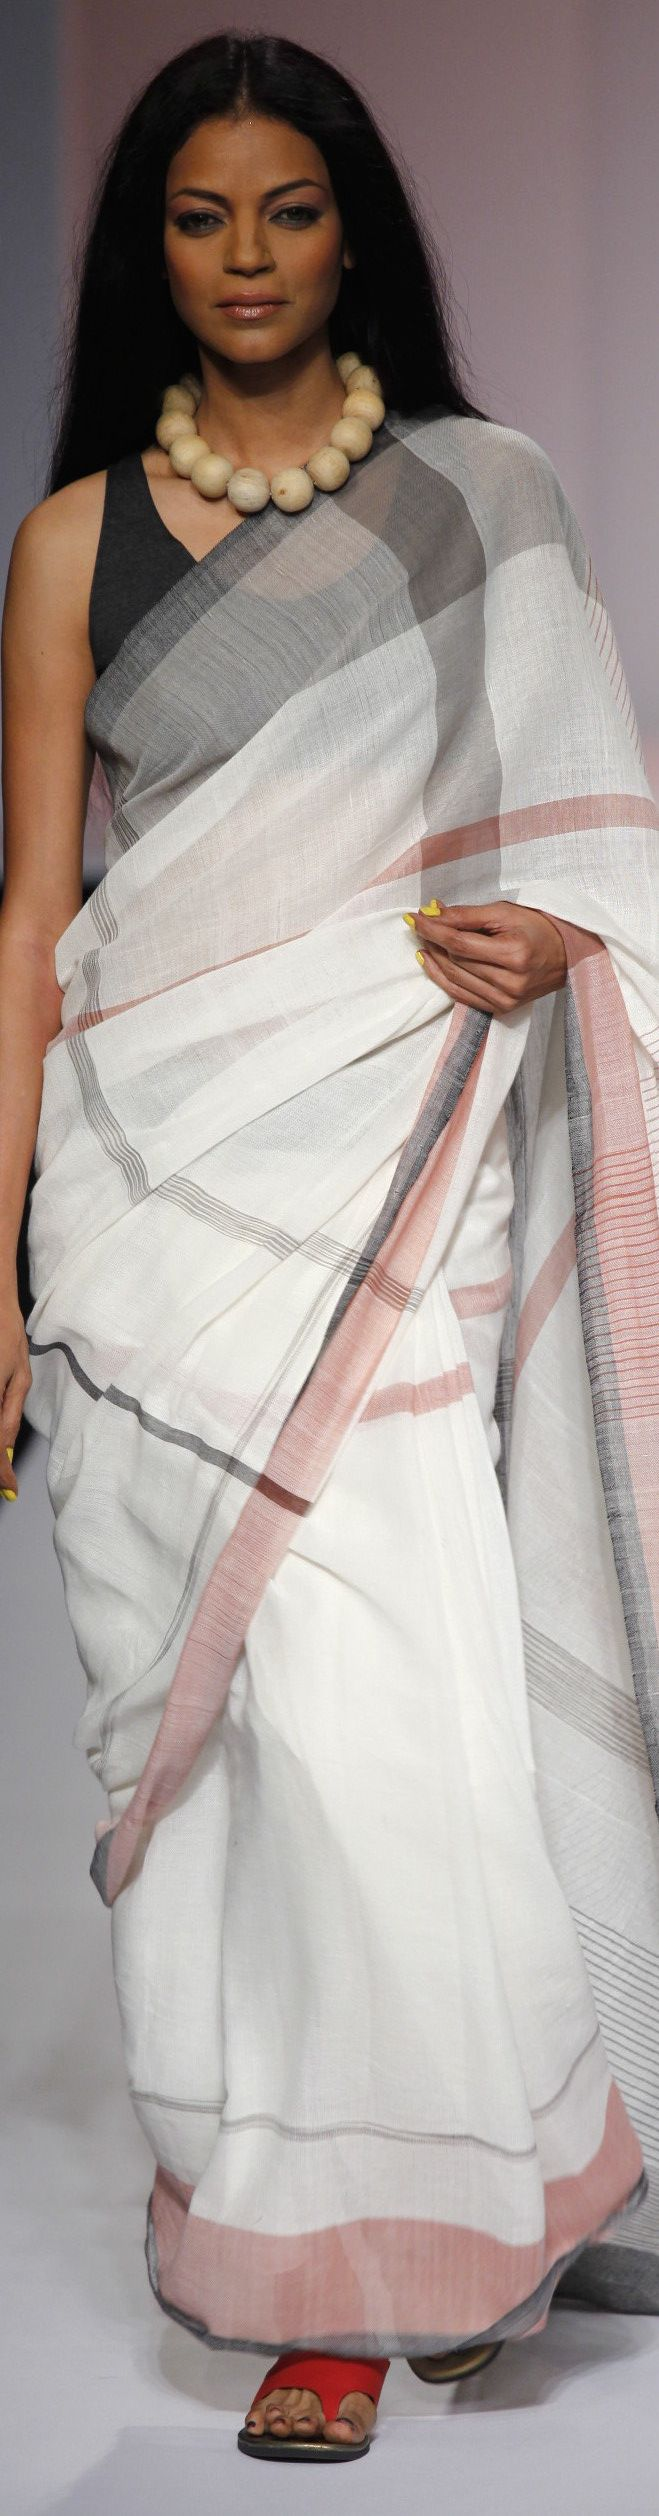 Wendell Rodricks' Show at the Wills Lifestyle India Fashion Week SS 2011 Reviving the original Kunbi sari from the Kunbi tribe collection - original pin by @webjournal